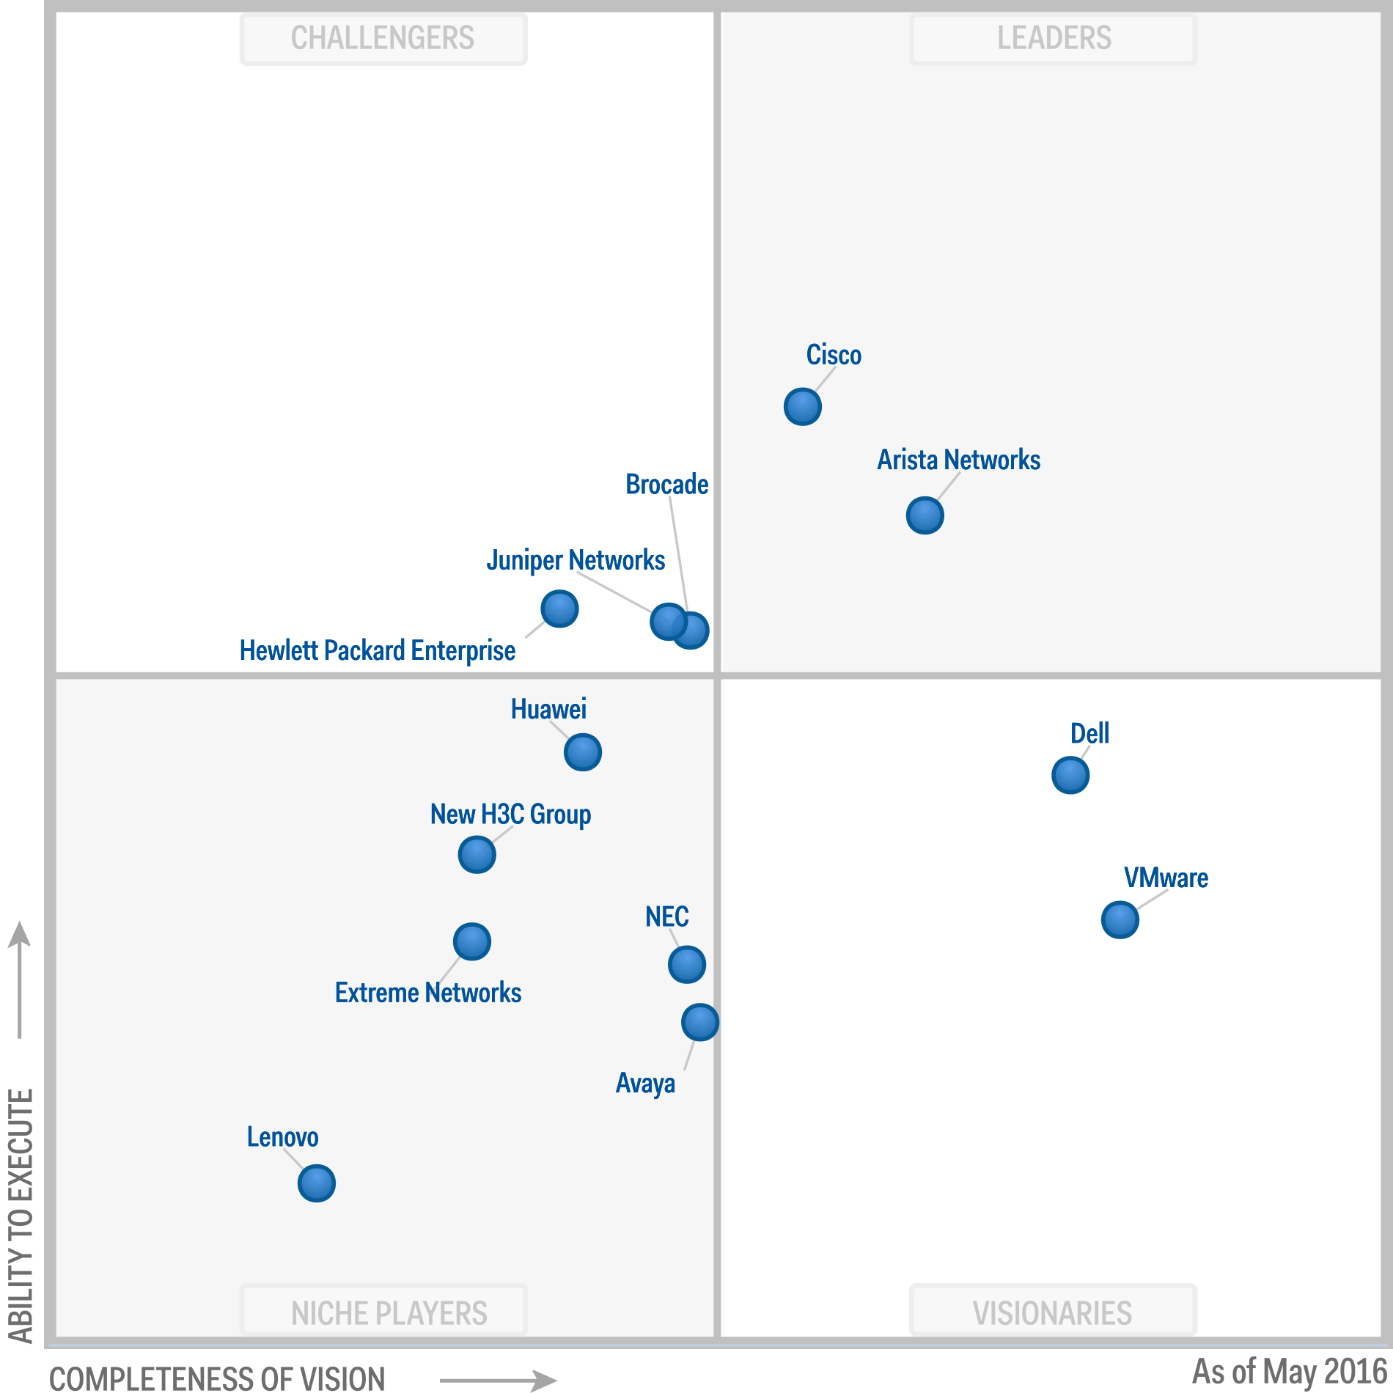 Magic Quadrant for Data Center Networking 2016 (G00278427)